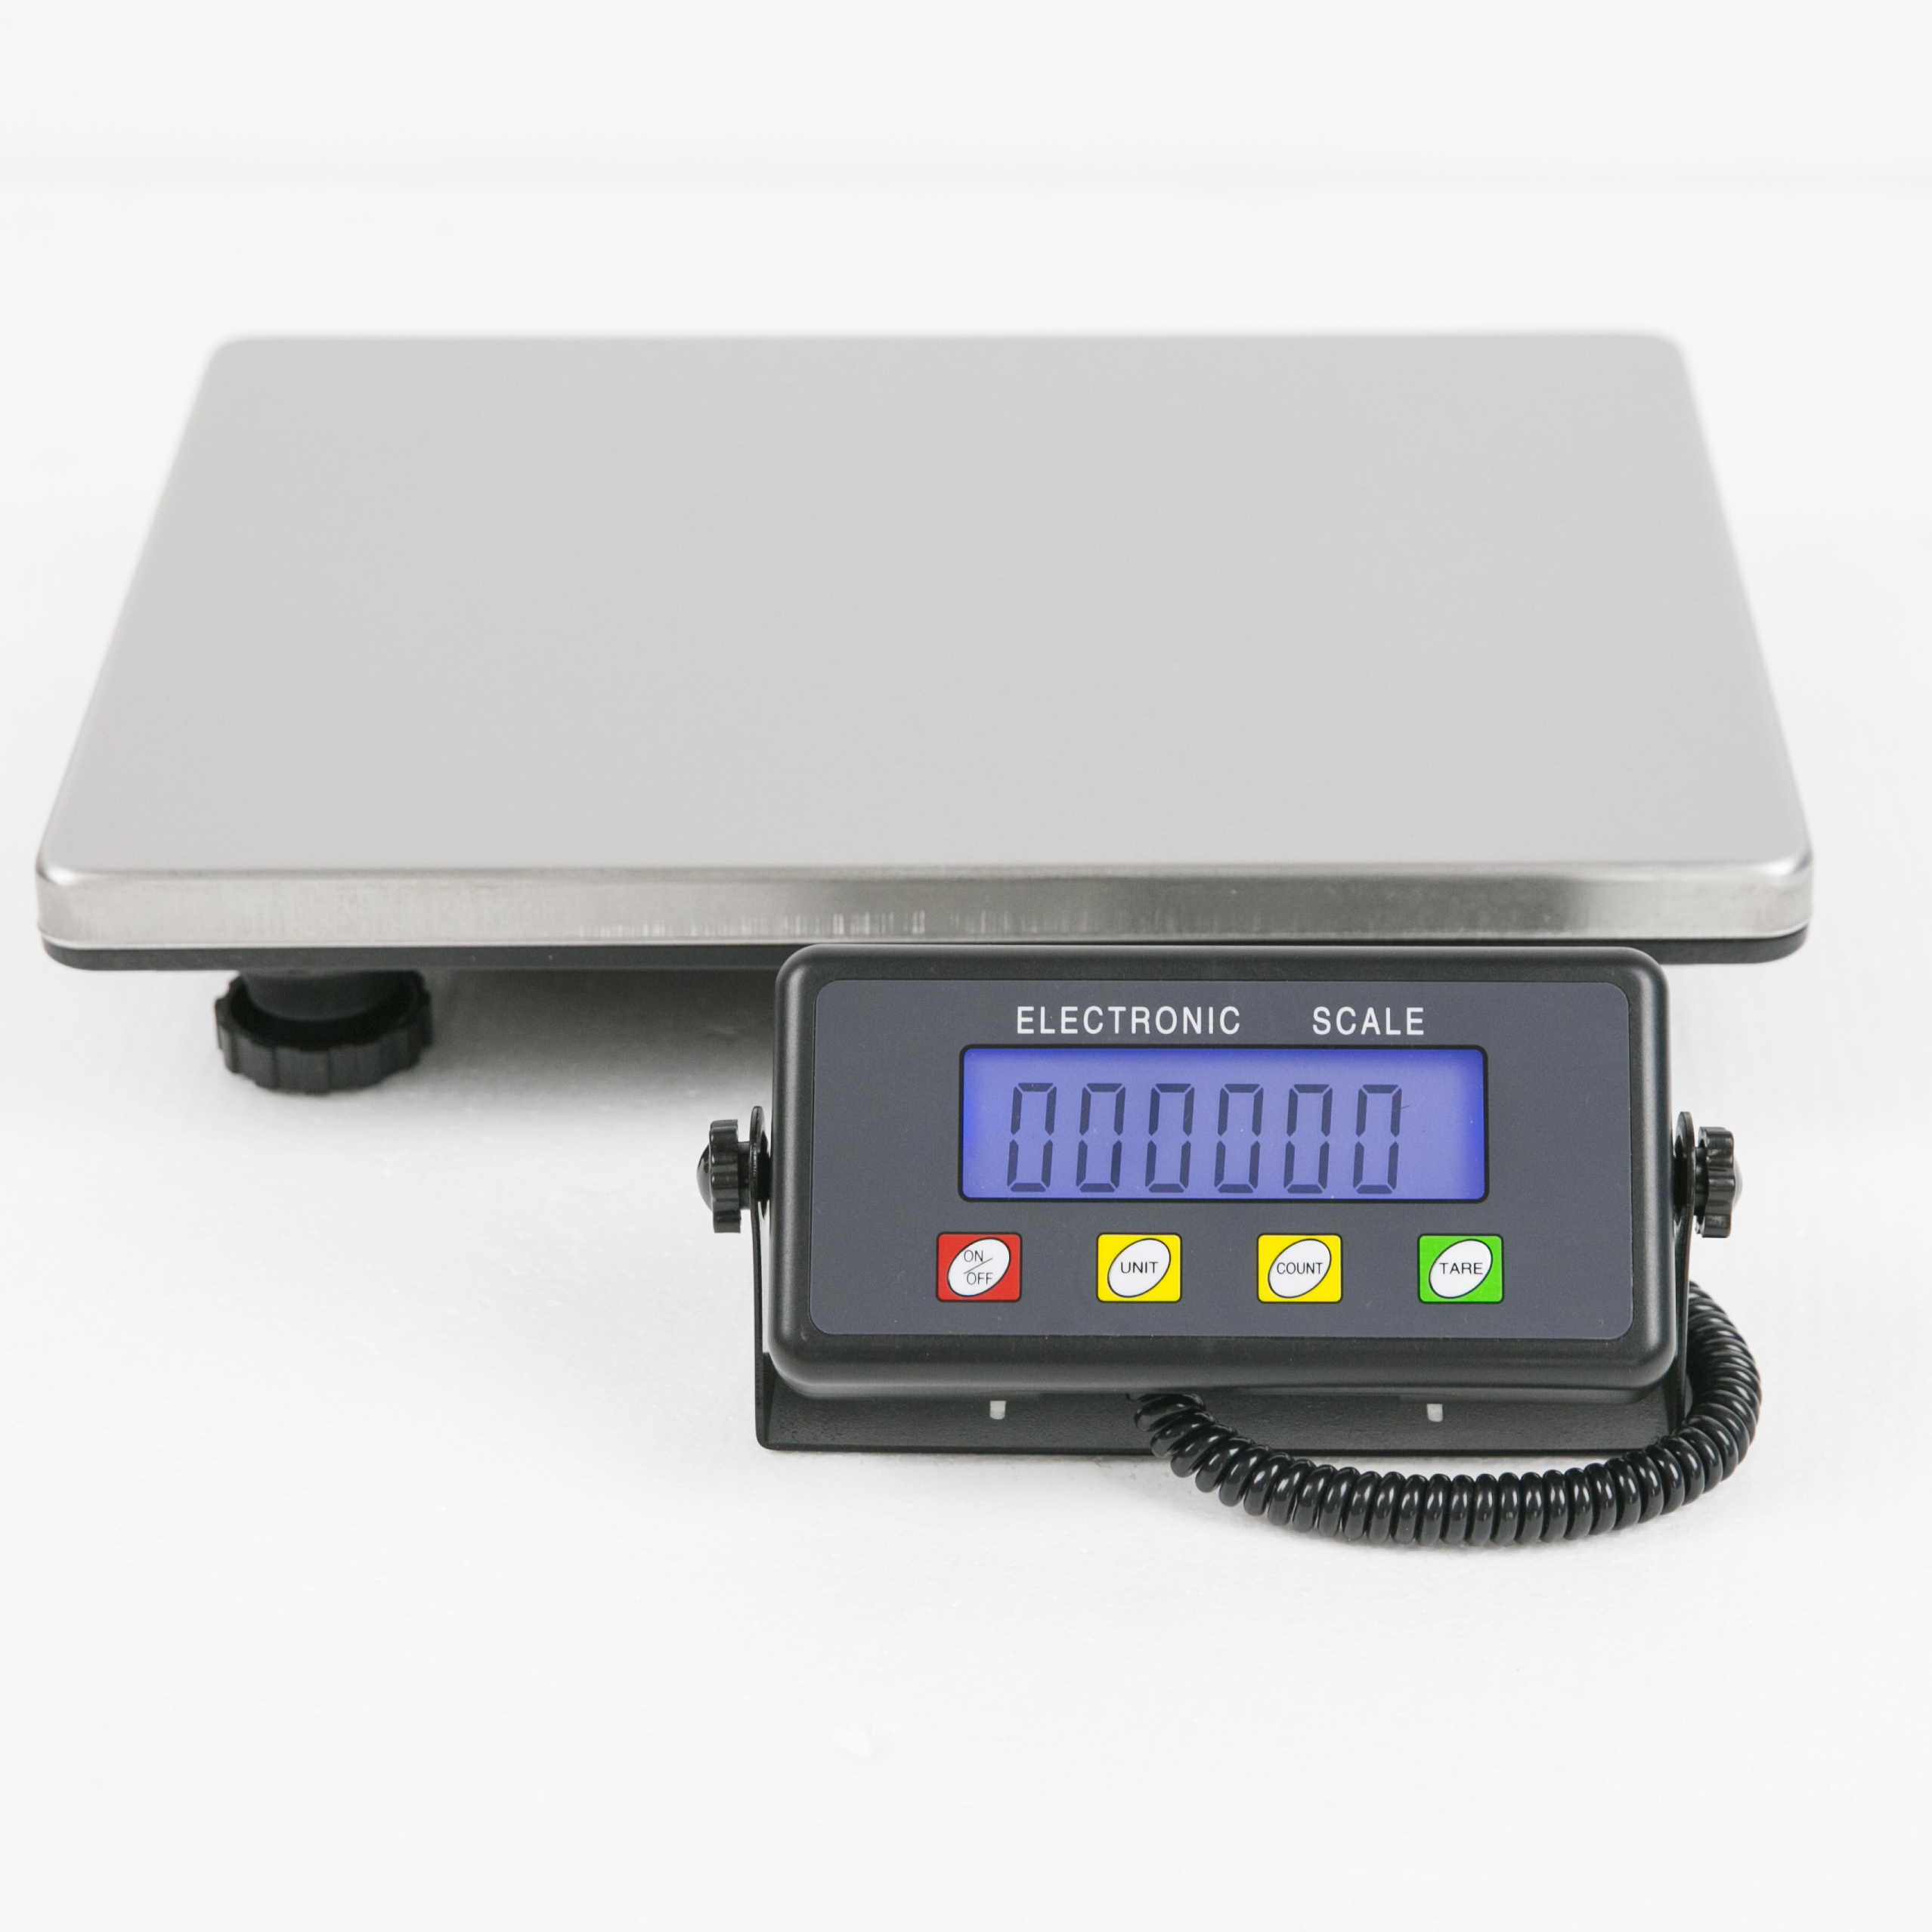 Portable <font><b>200kg</b></font> Electronic <font><b>digital</b></font> platform weighing postal warehouse <font><b>scale</b></font> for express parcel image